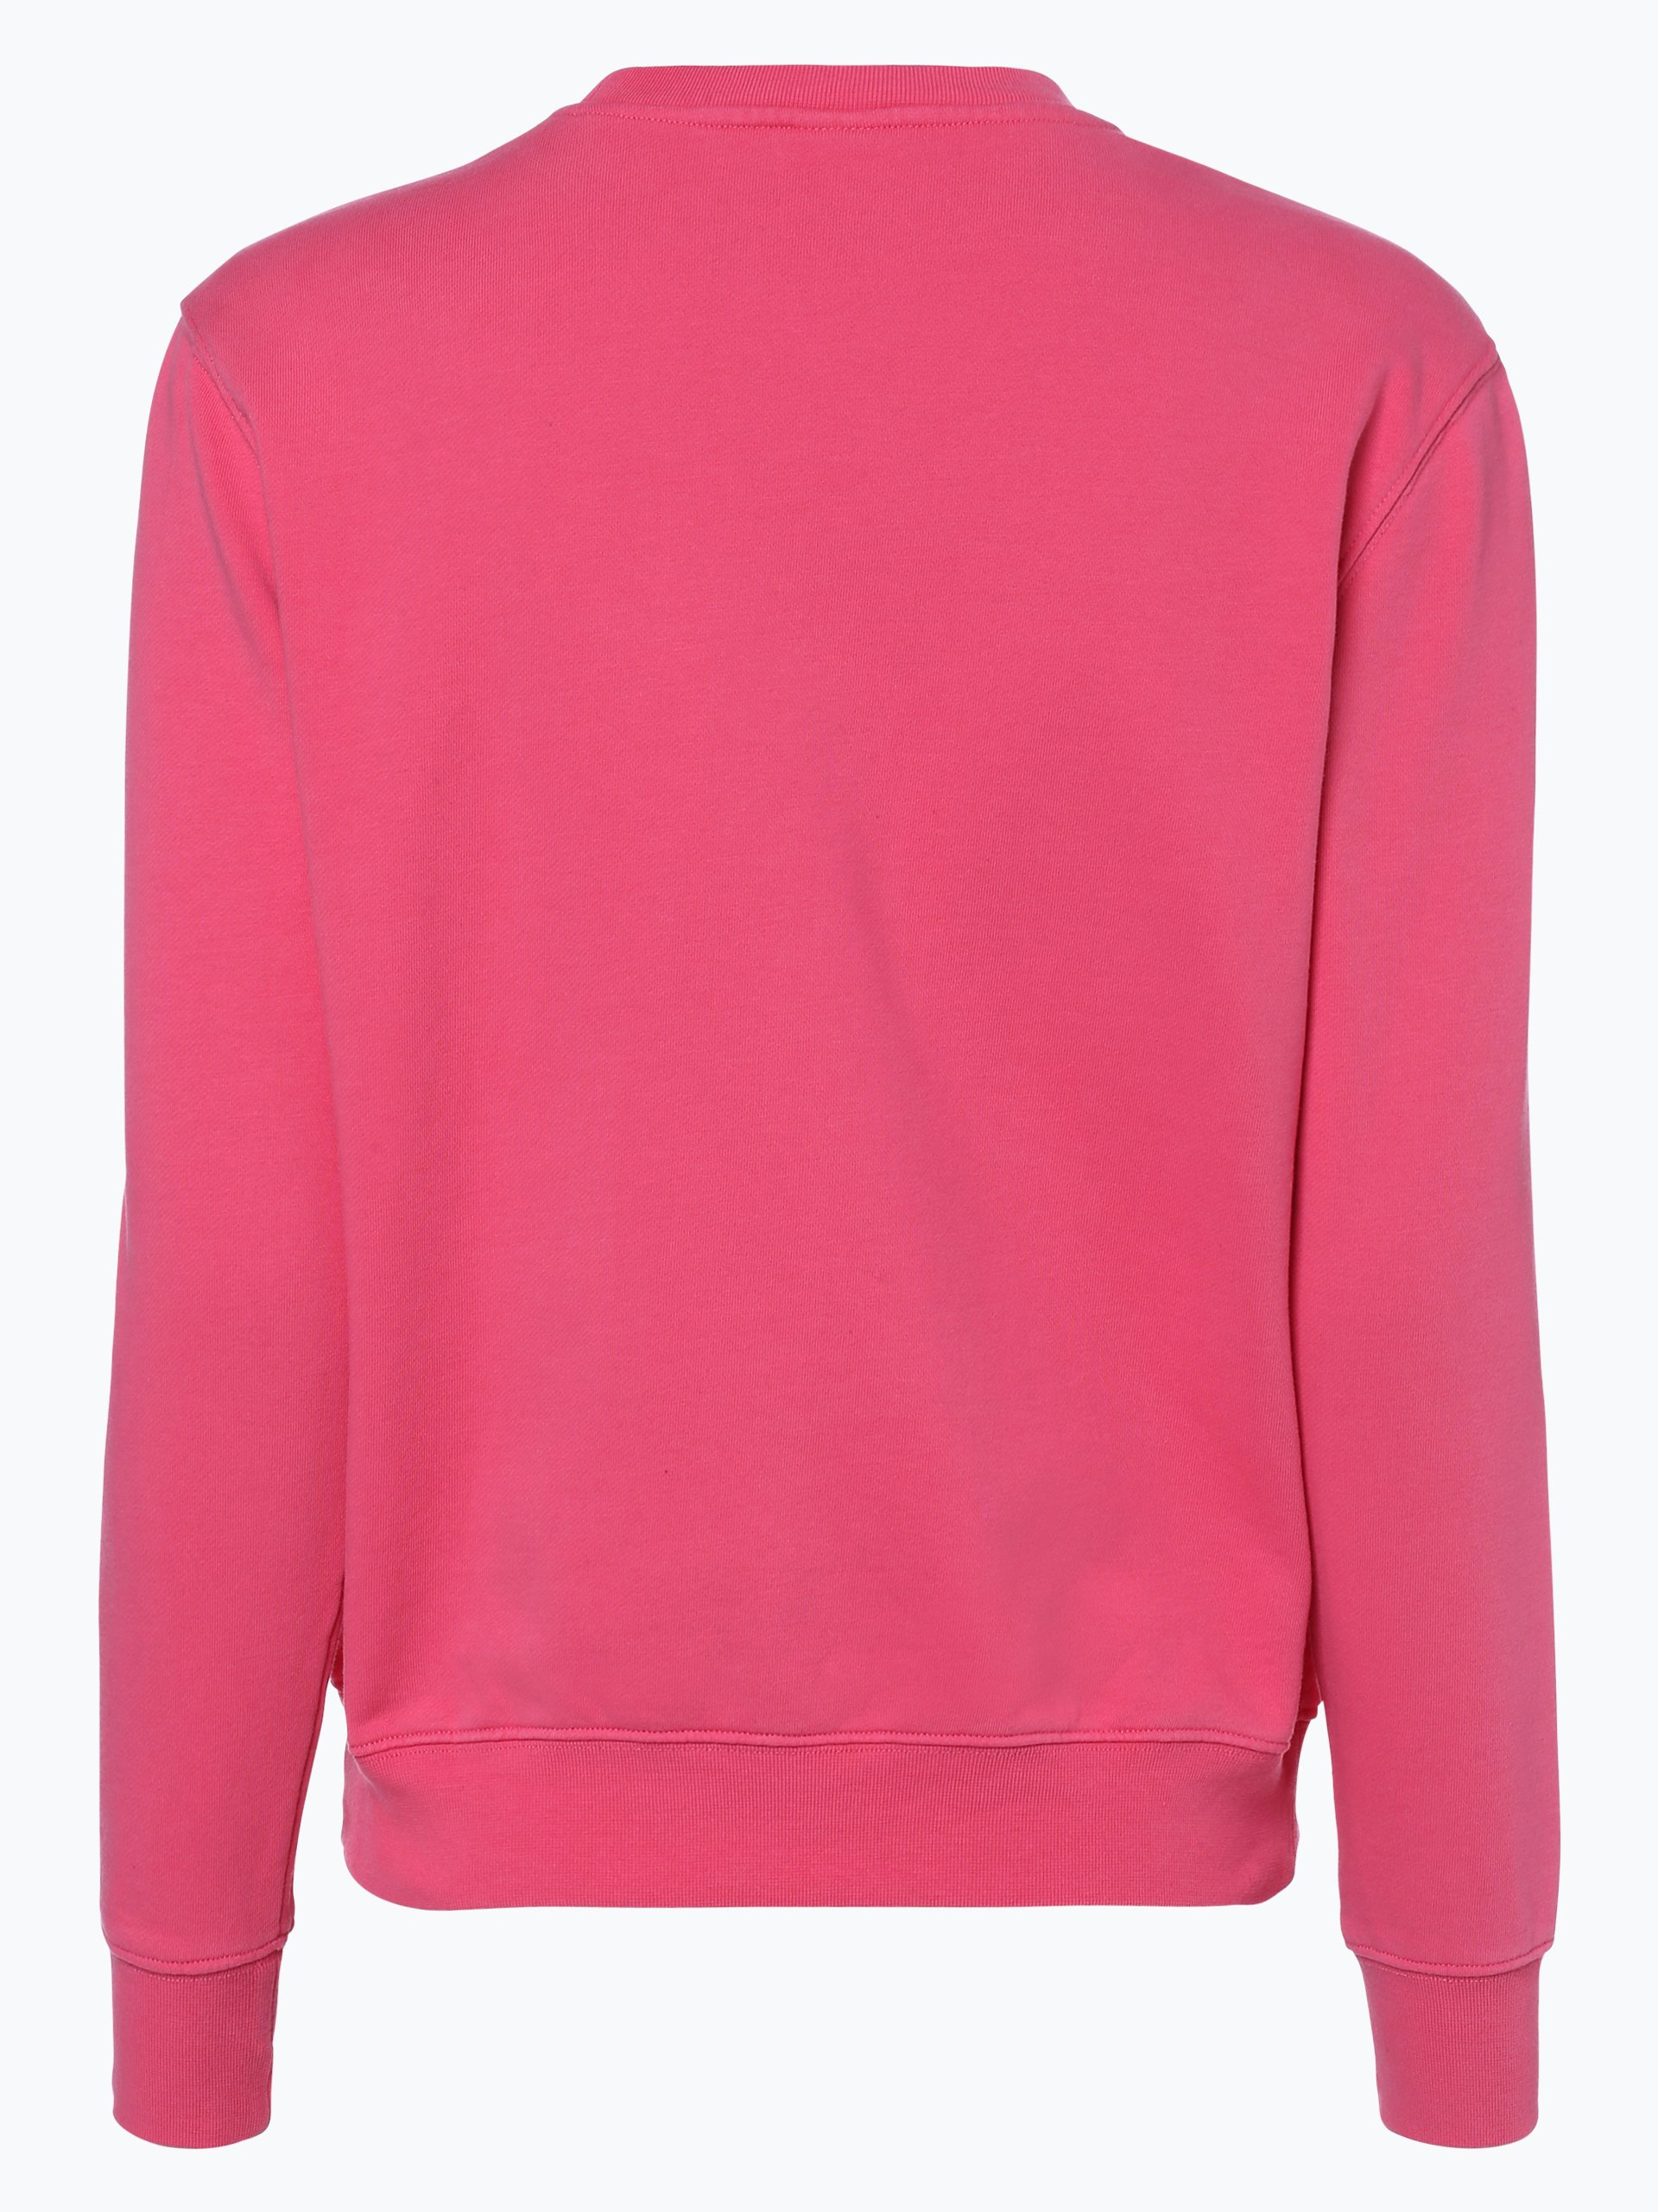 BOSS Casual Damen Sweatshirt - Taloboss